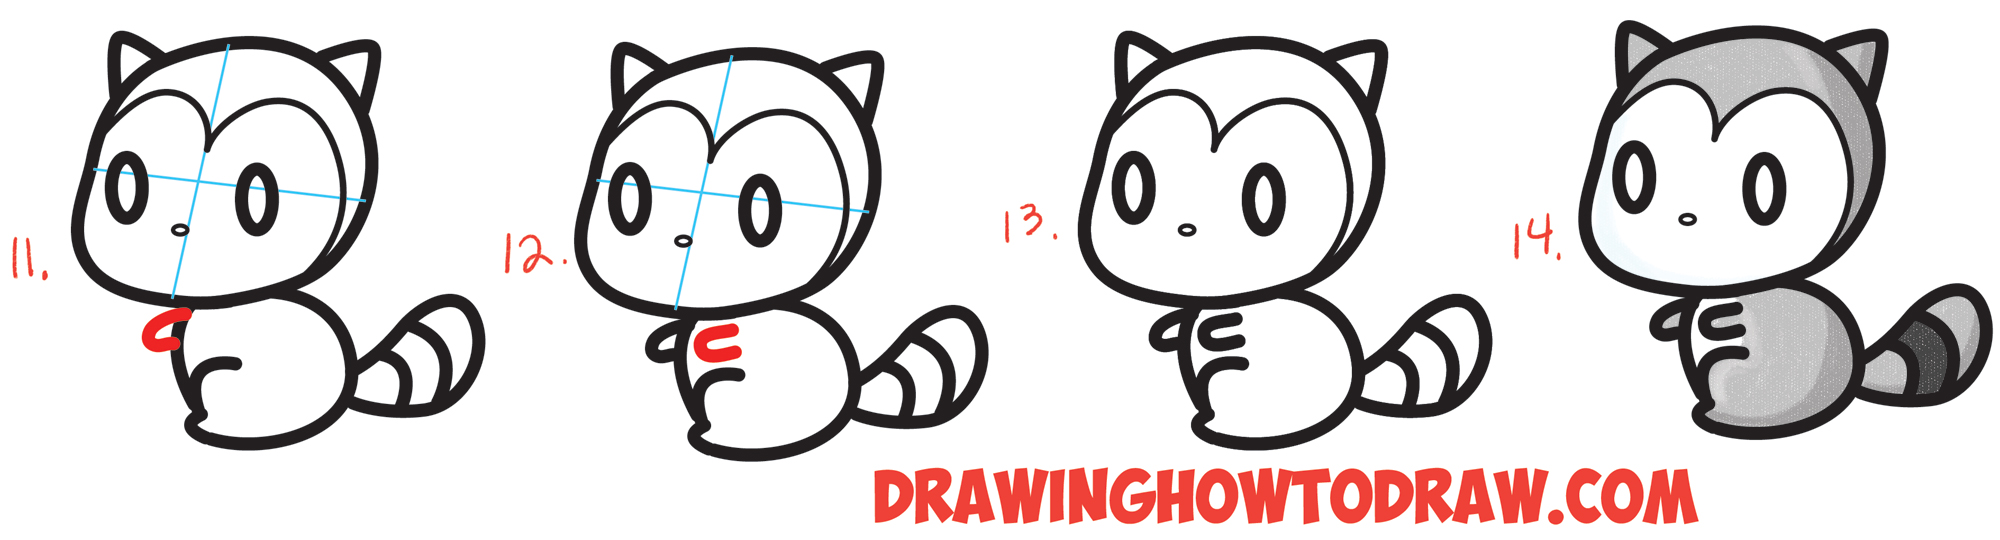 Drawn racoon easy Draw How Chibi with 3